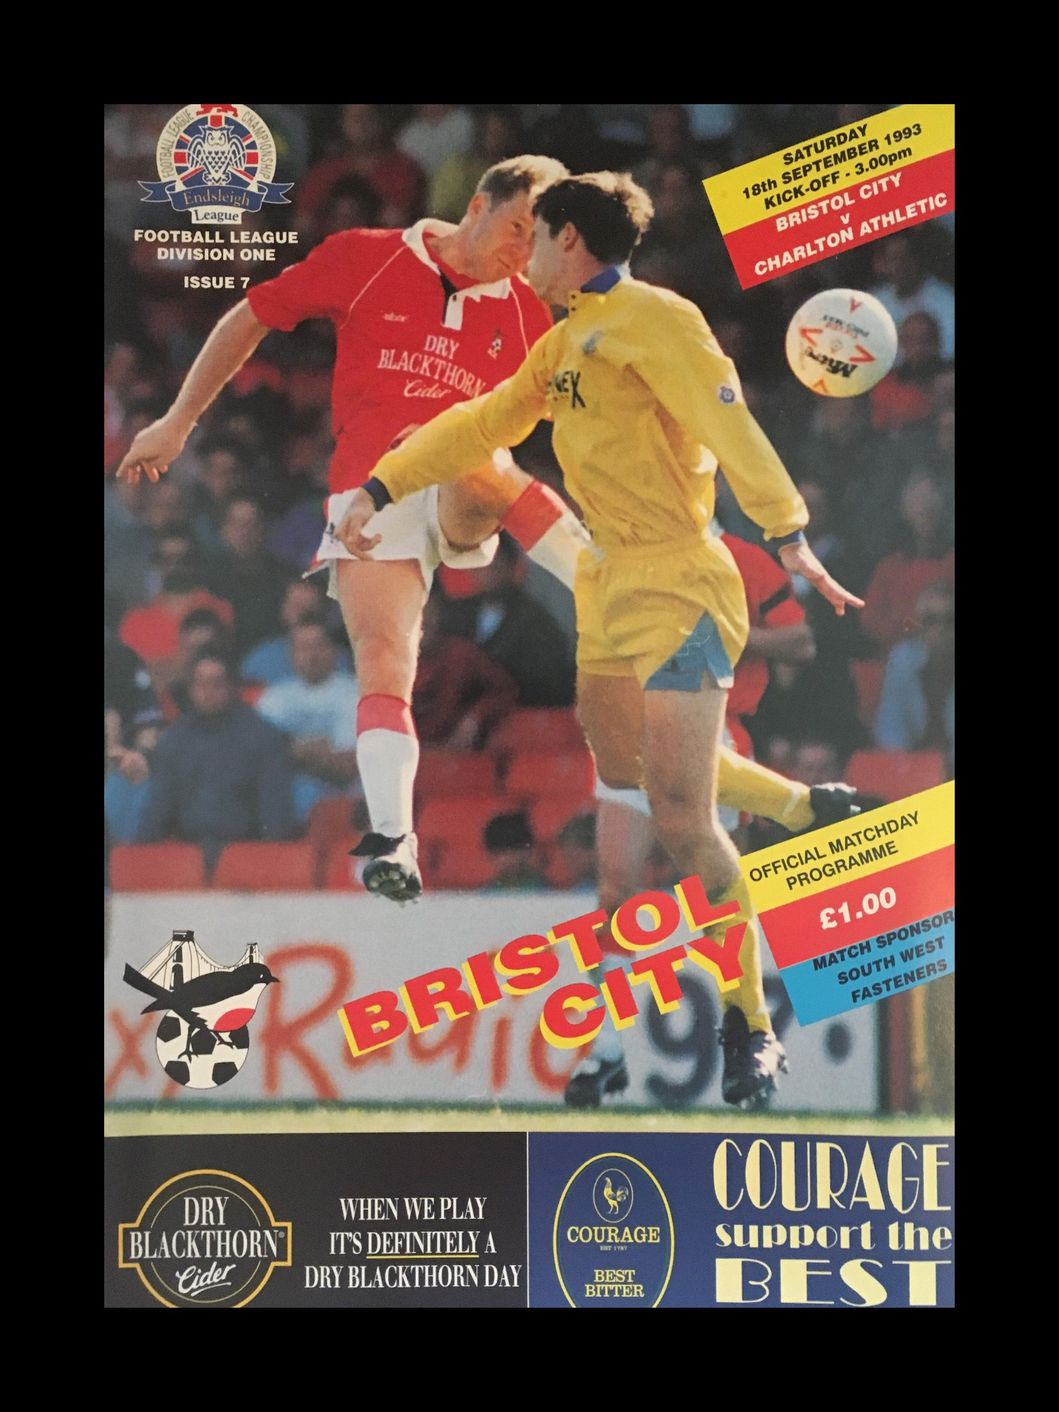 Bristol City v Charlton Athletic 18-09-1993 Programme